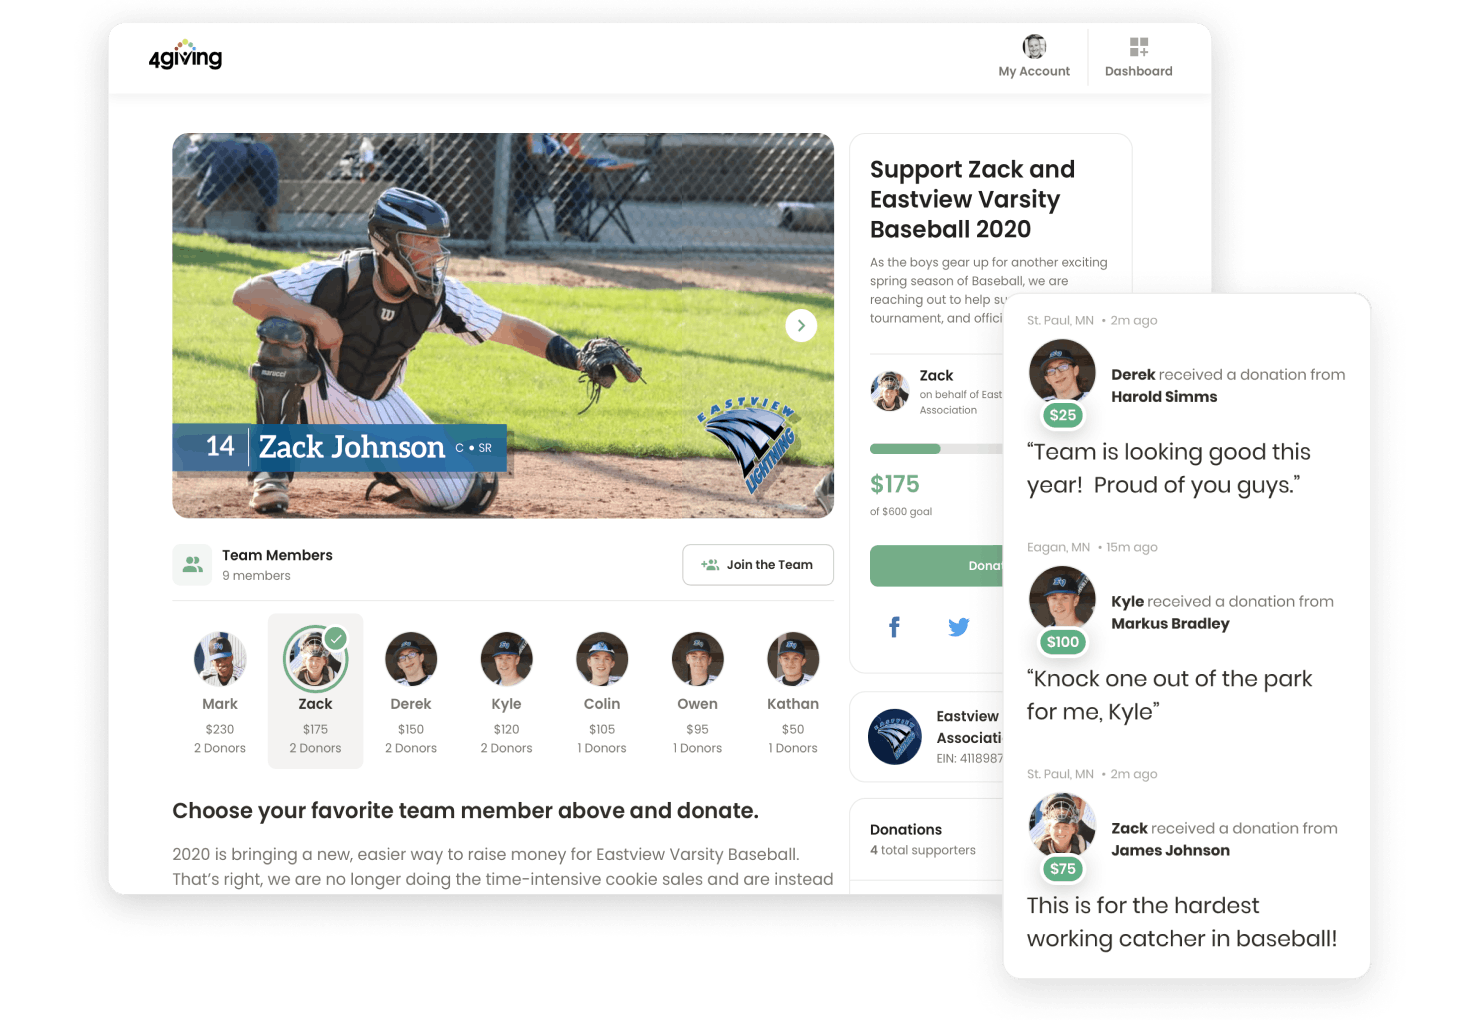 4giving fundraising sports donation page view overlaid with comments sidebar